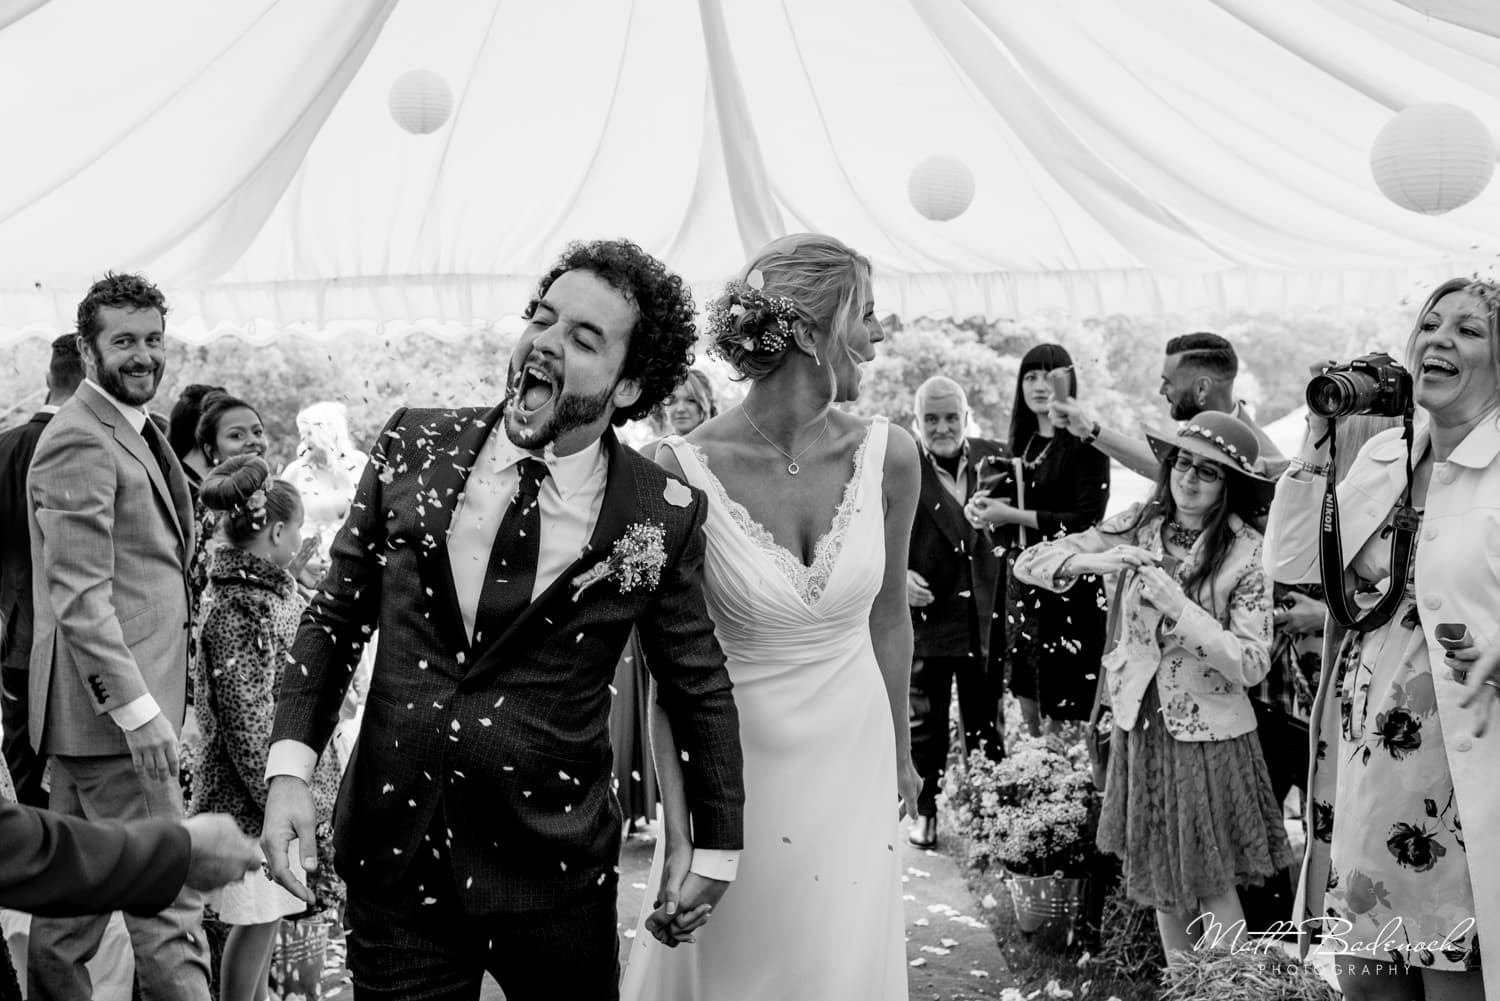 Groom eating confetti at his marquee wedding